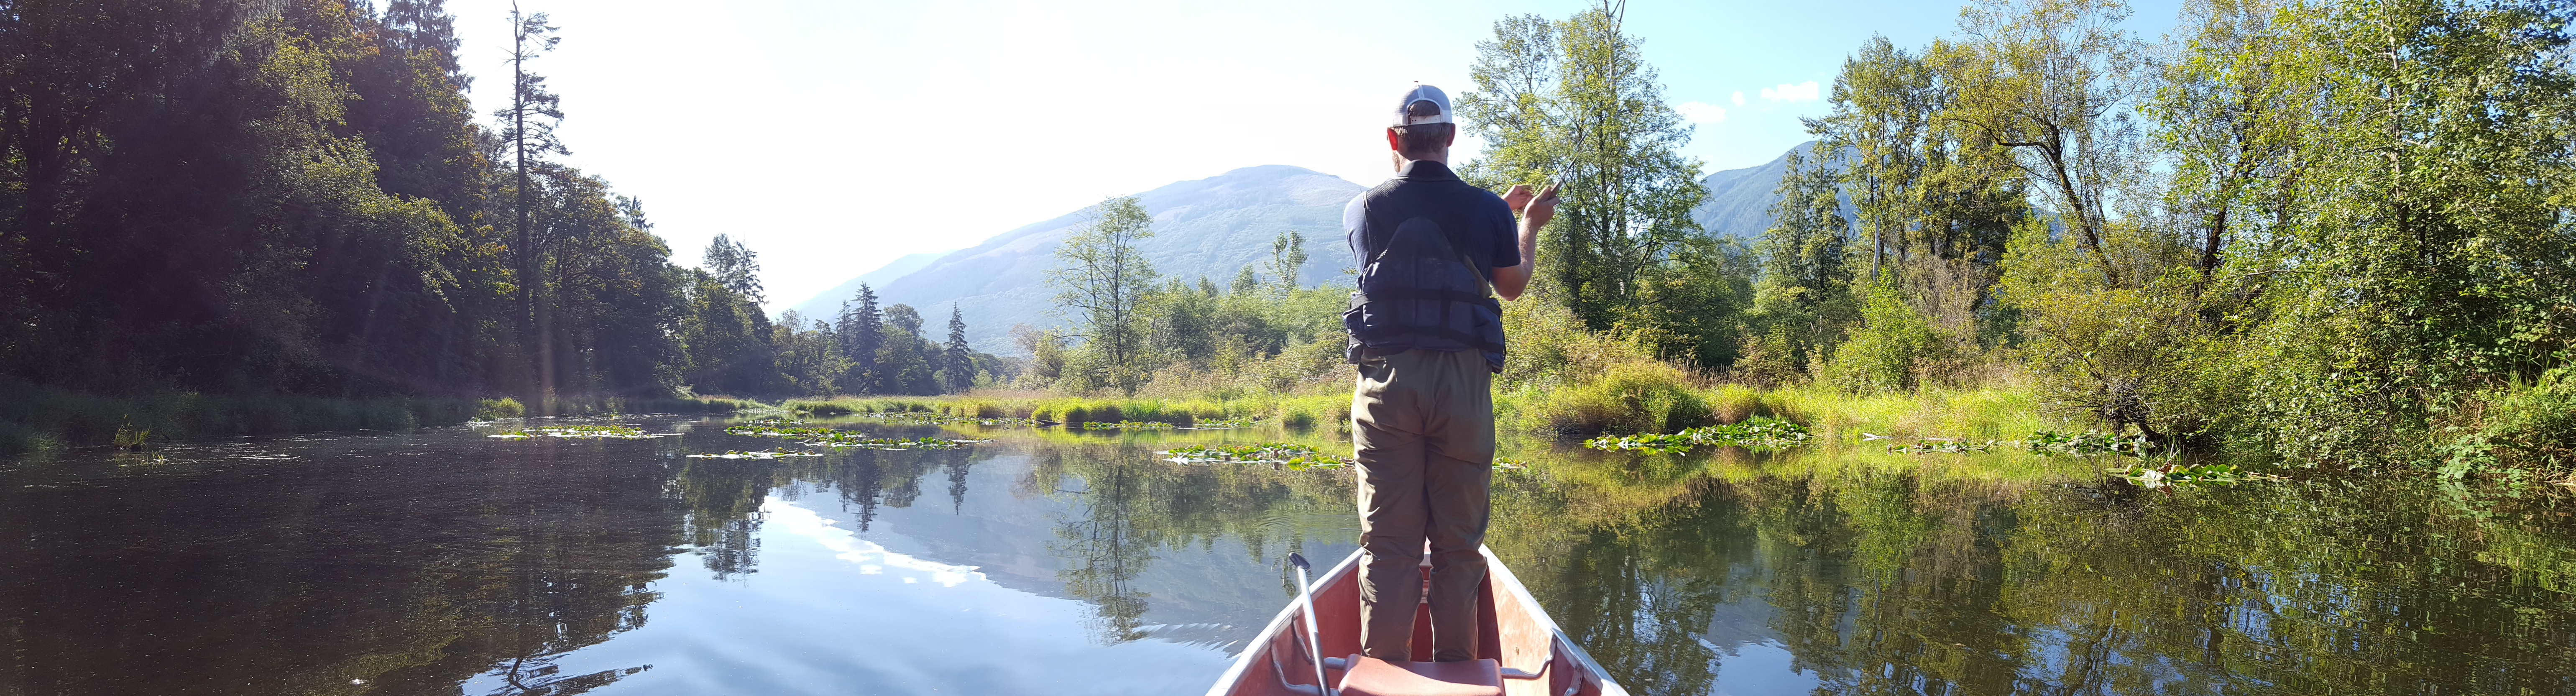 Fly fishing carey 39 s slough skagit fisheries enhancement for Skagit river fishing